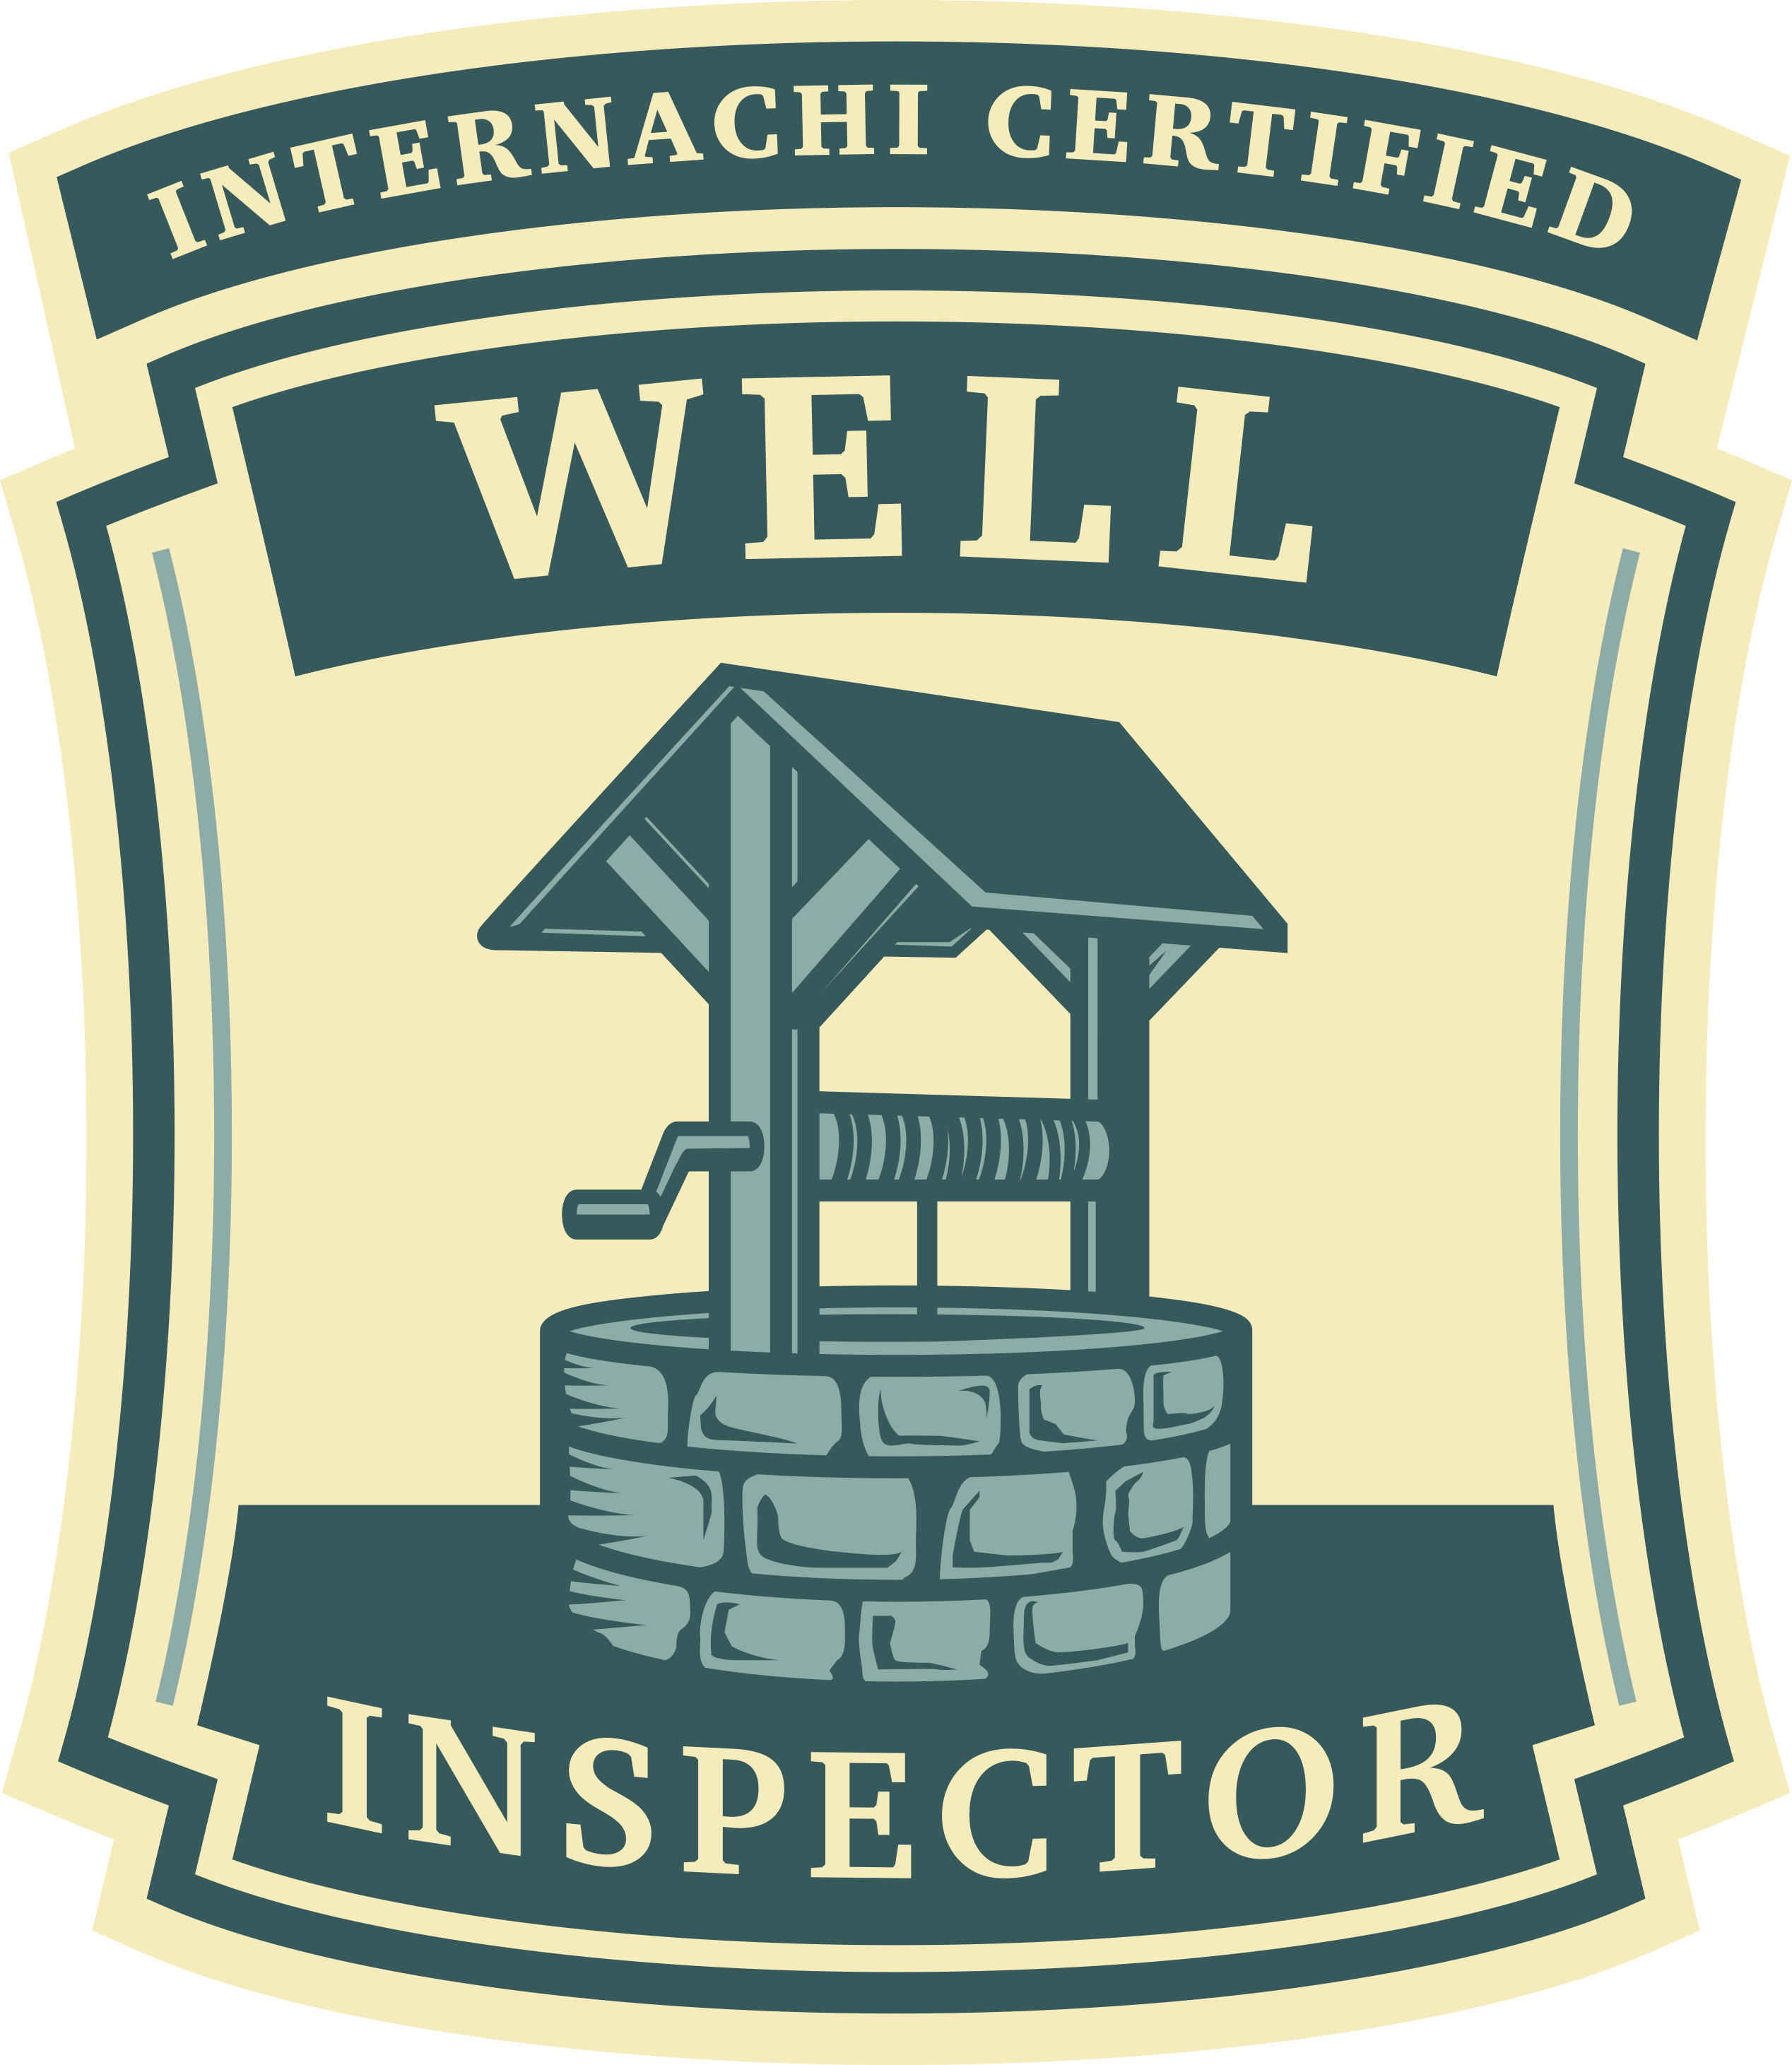 InterNACHI Certified Well Inspector